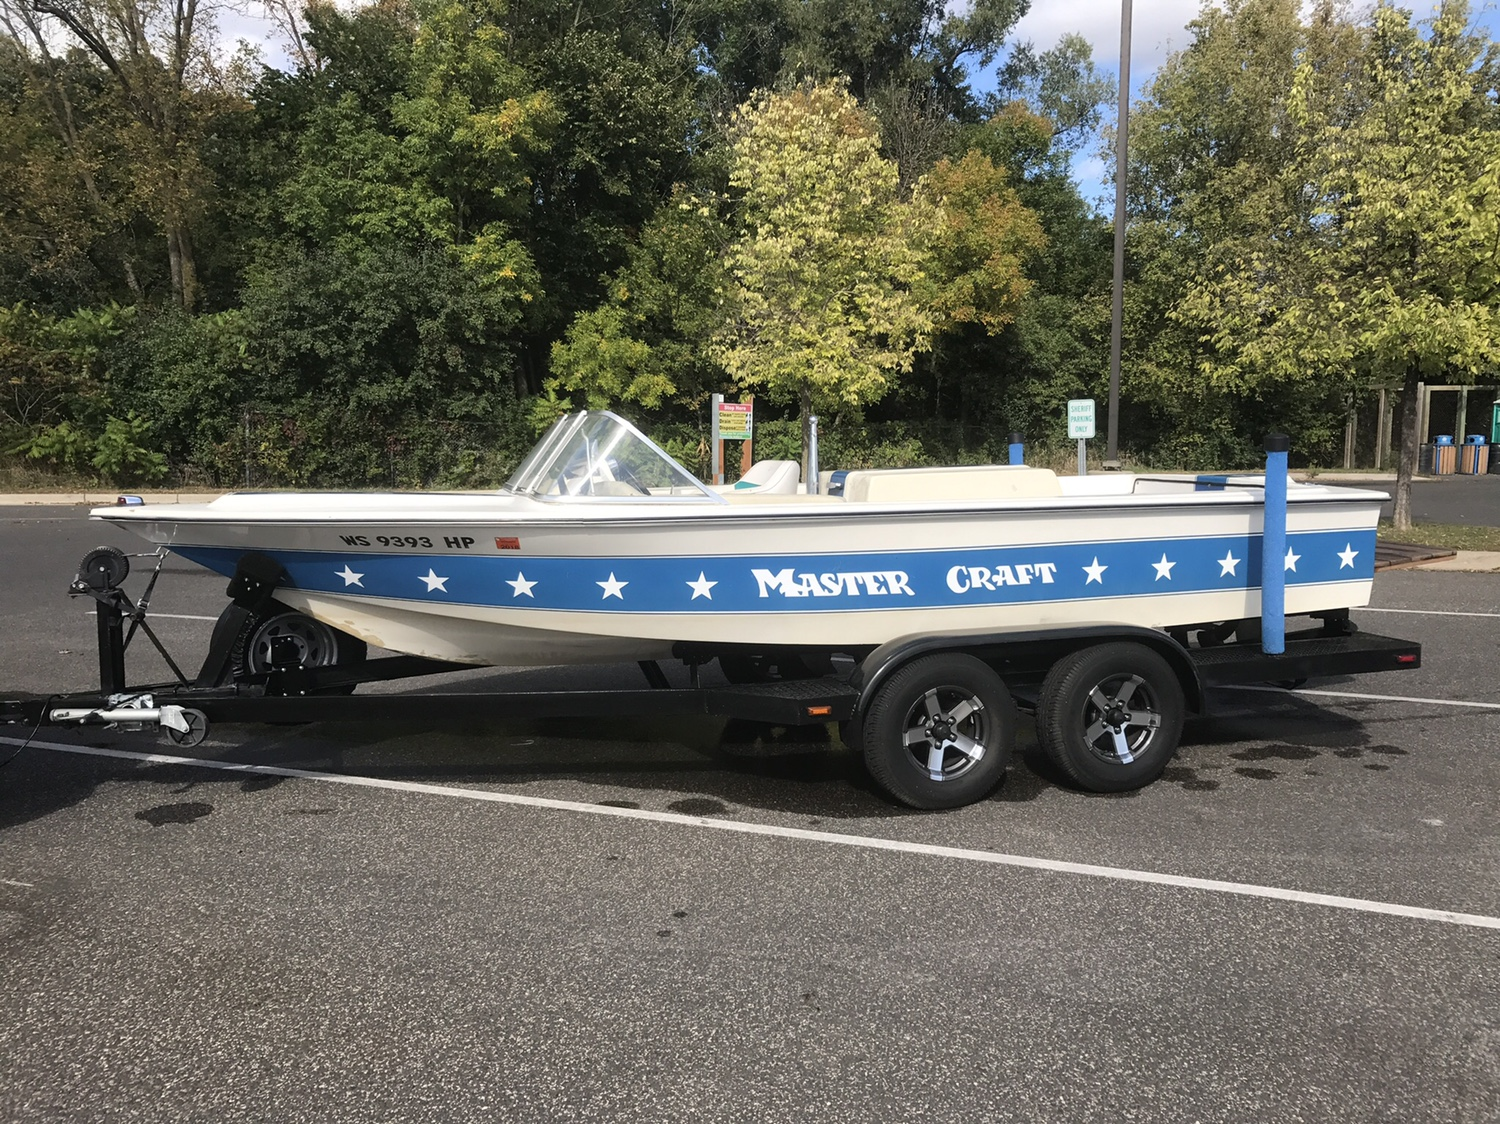 Mastercraft Project Boat for Sale on Craigslist - TeamTalk